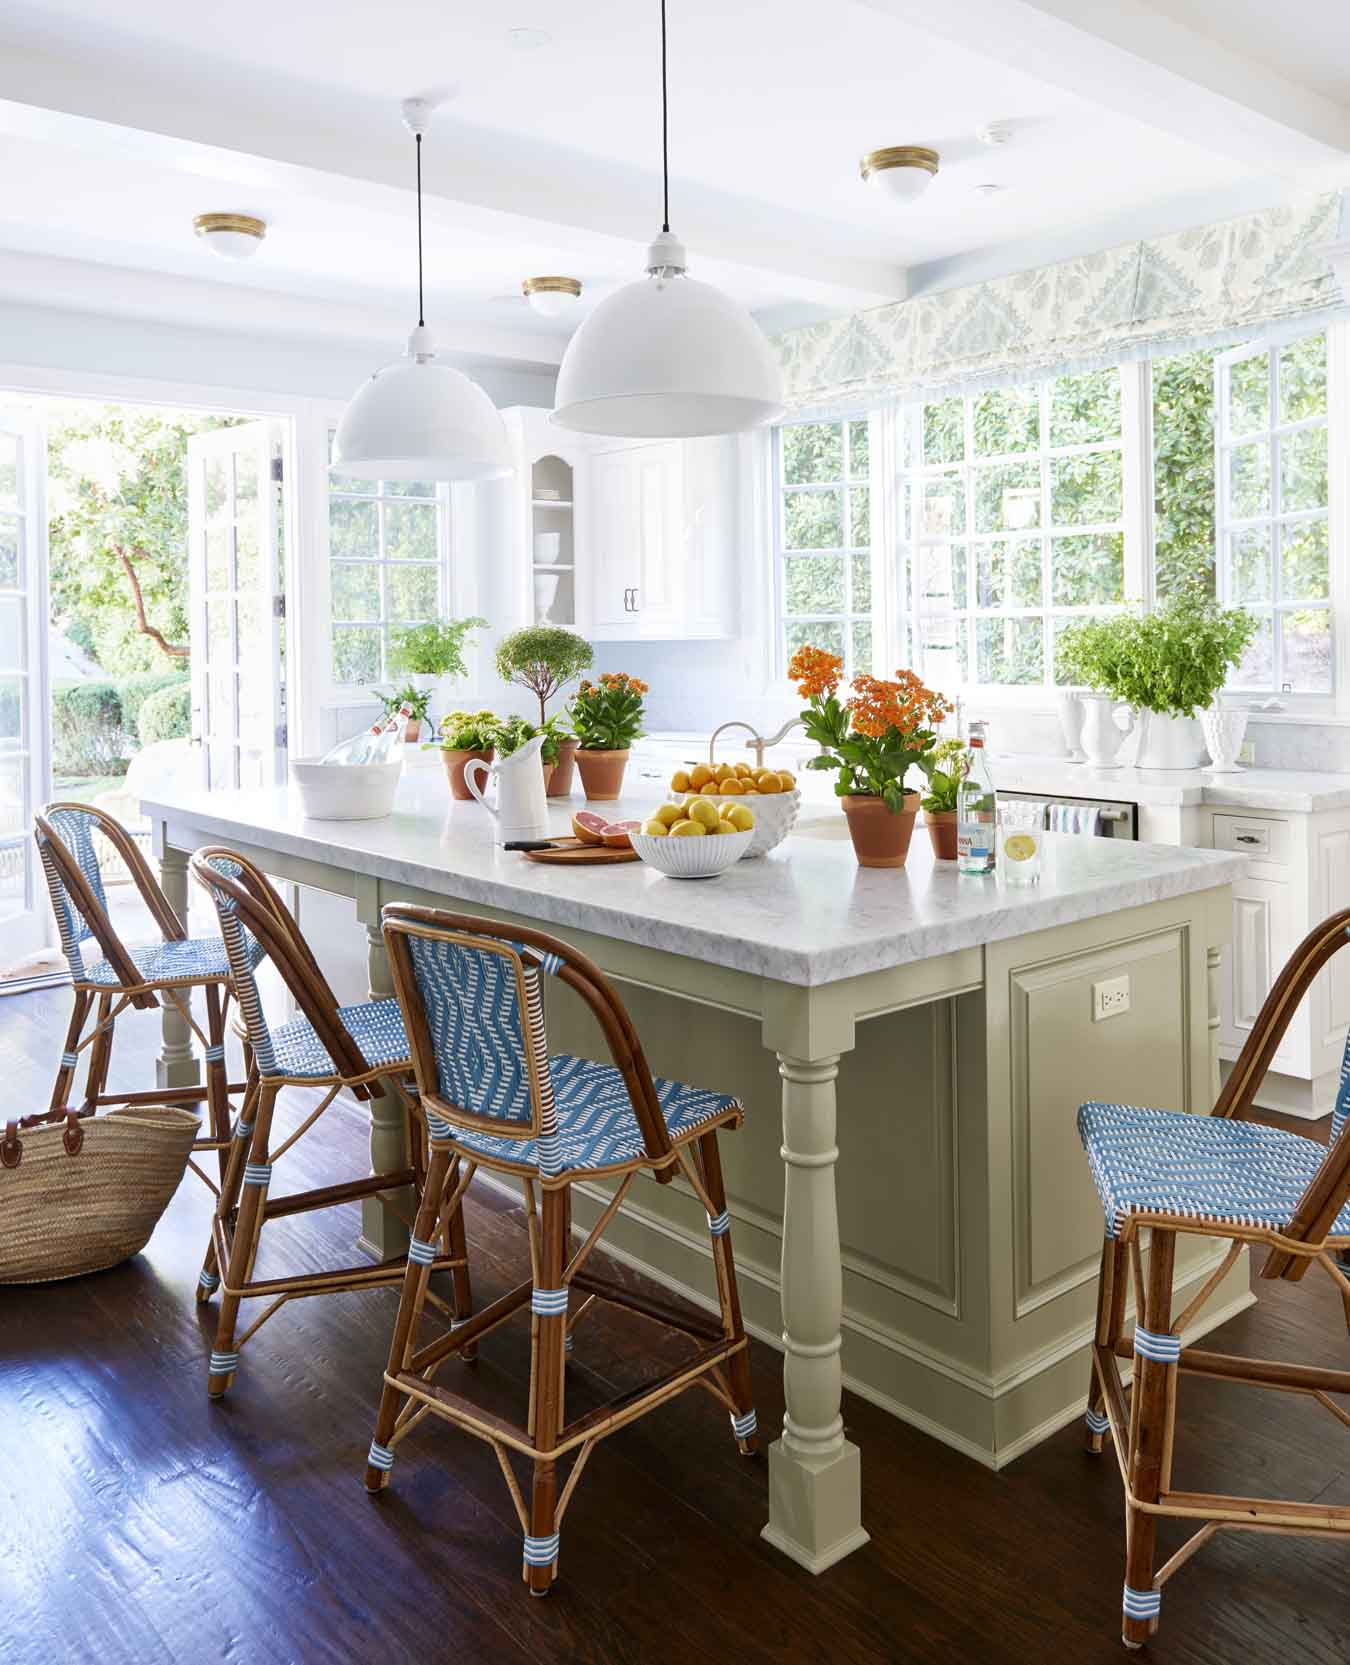 50+ best kitchen island ideas - stylish designs for kitchen islands